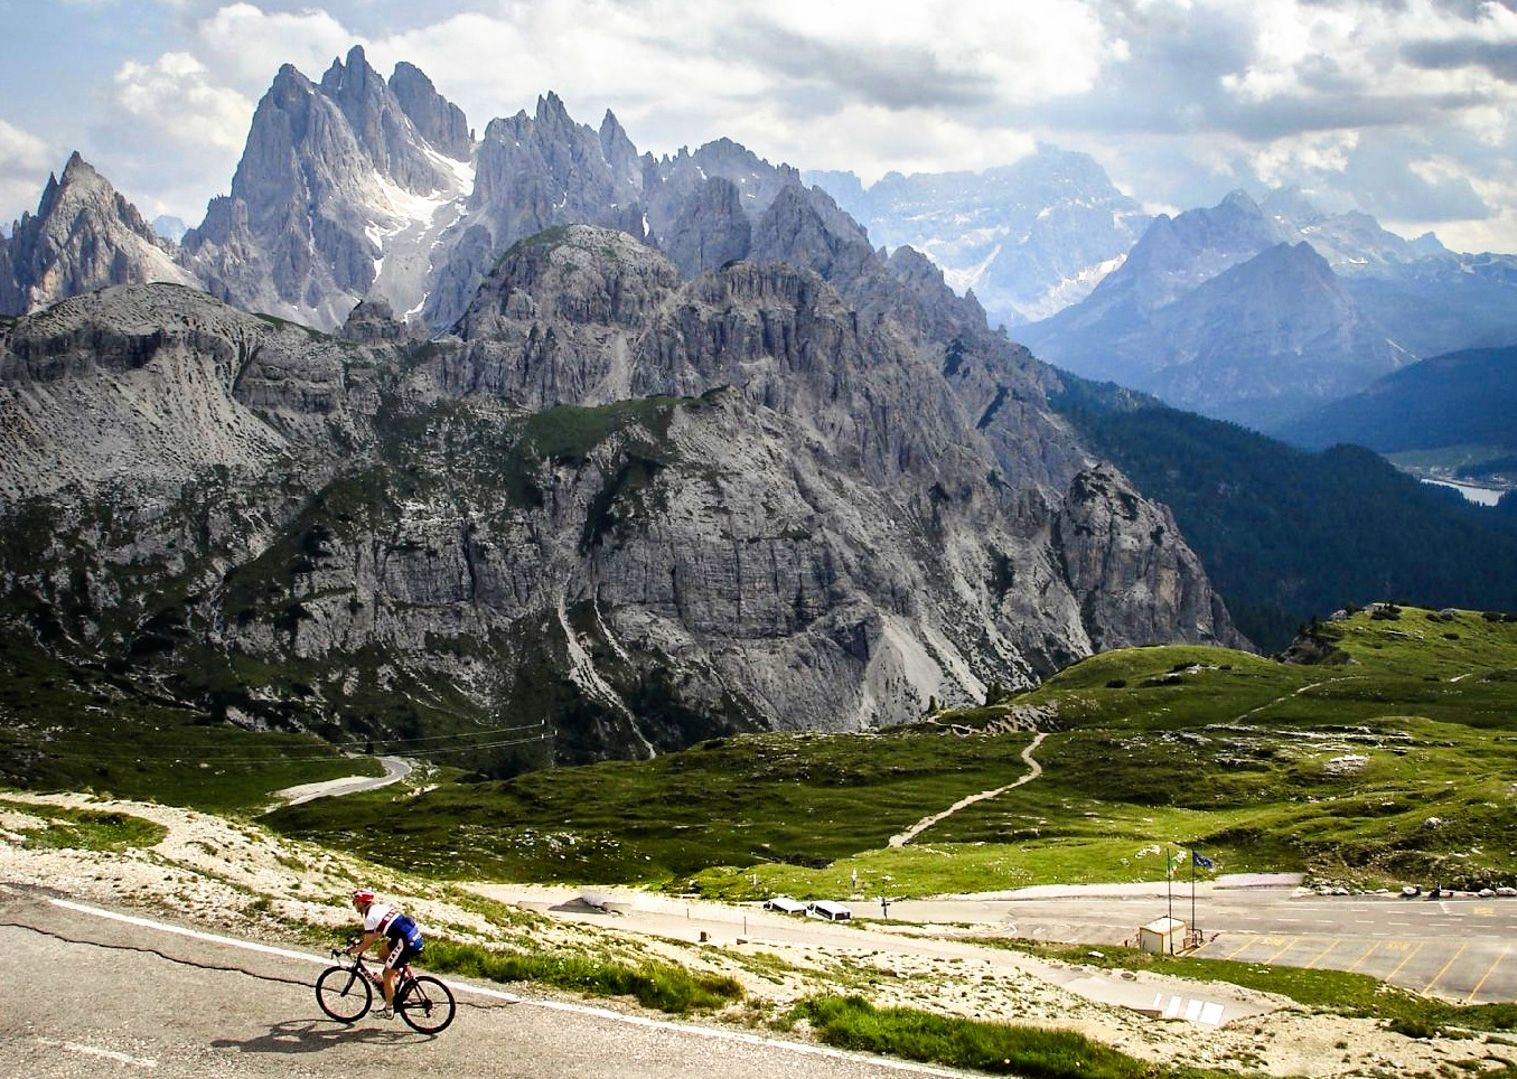 incredible-mountain-climbs-scenery-on-road-bike.jpg - Italy - Alps and Dolomites - Giants of the Giro - Guided Road Cycling Holiday - Italia Road Cycling